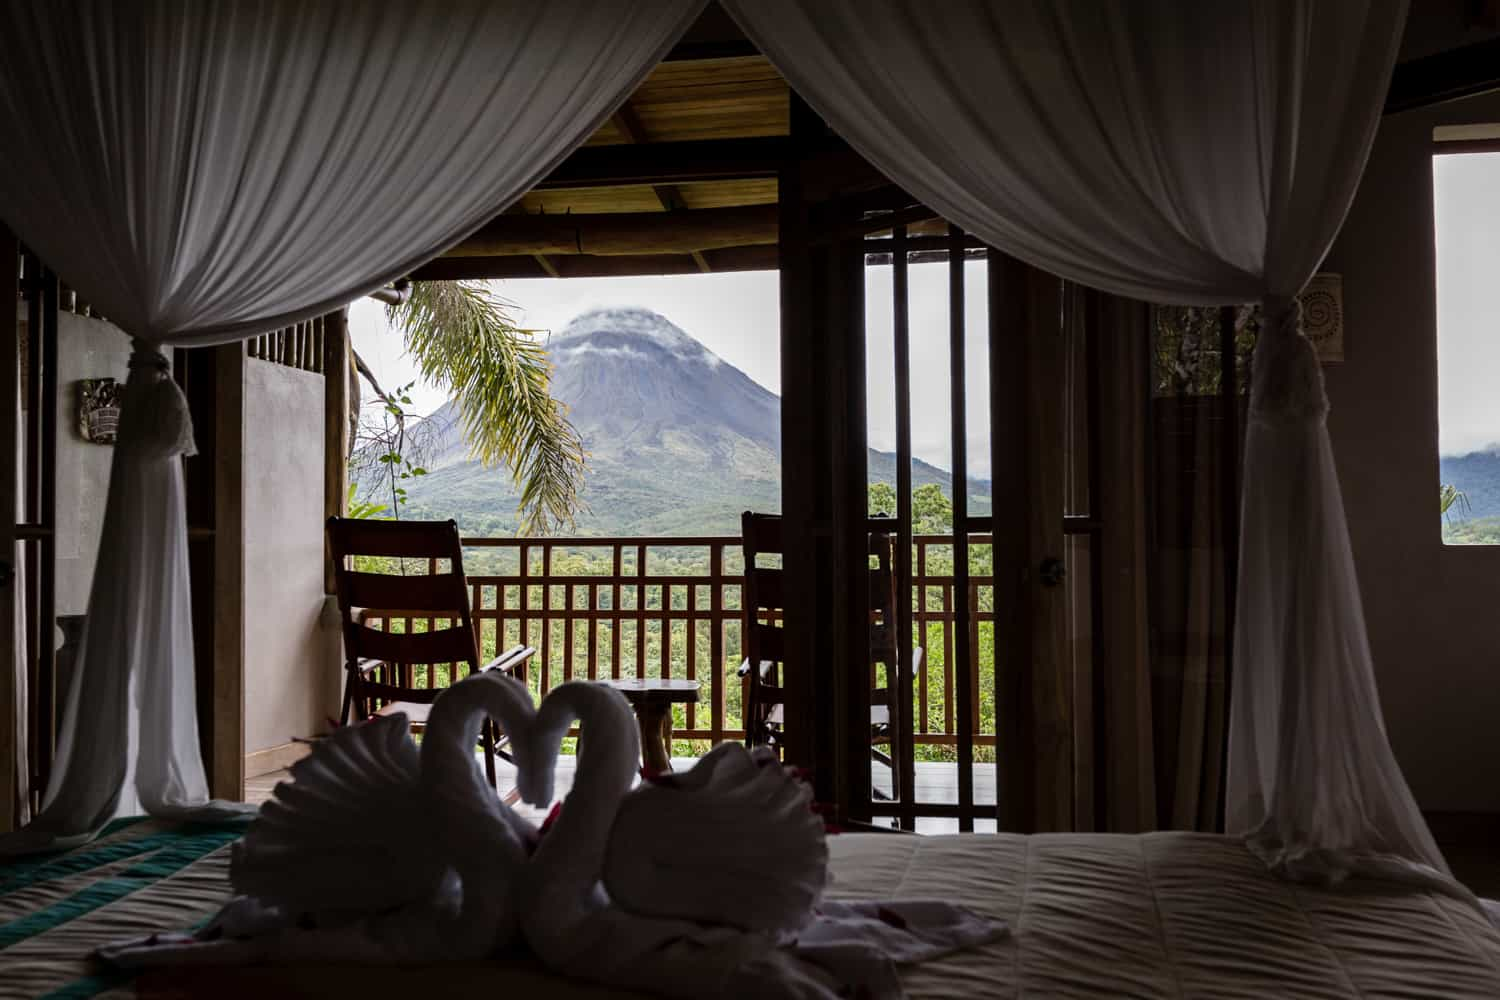 Silhouette of towels folded as swans on canopy bed.